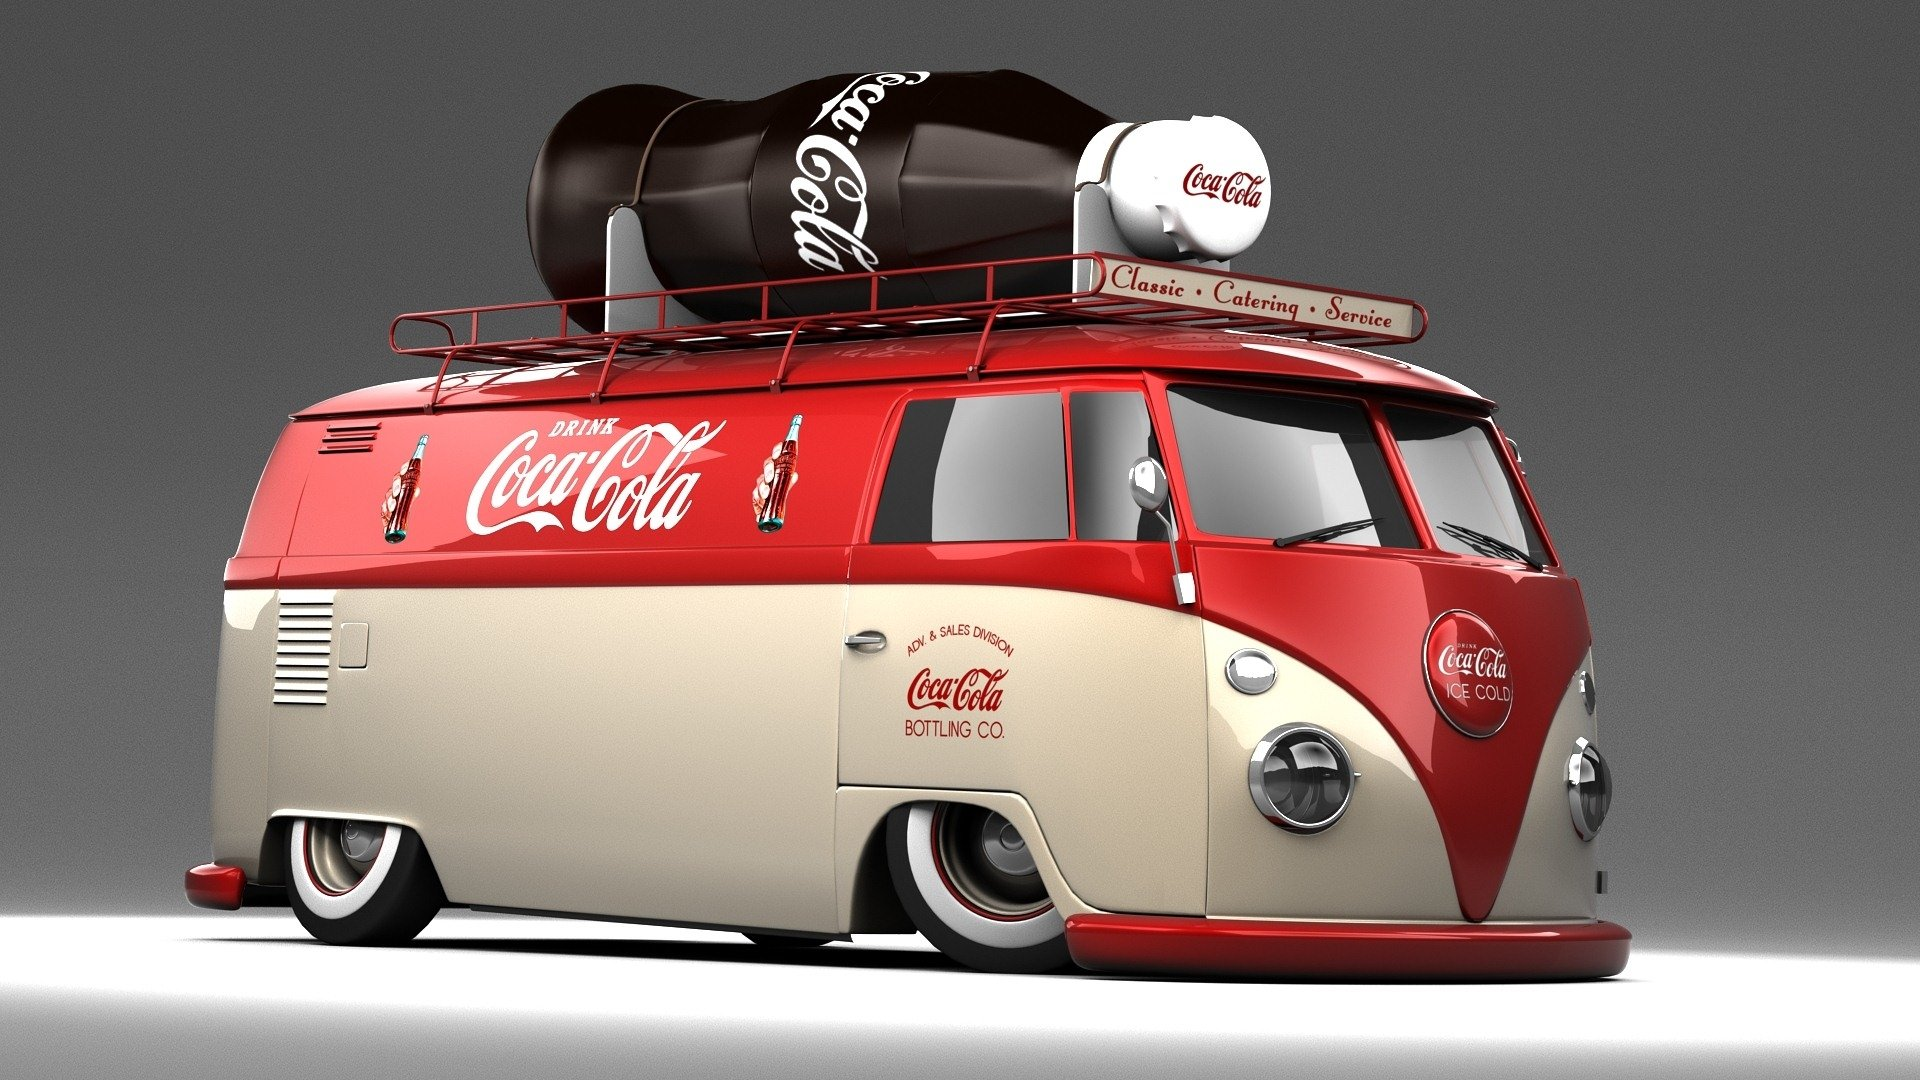 95 Coca Cola HD Wallpapers